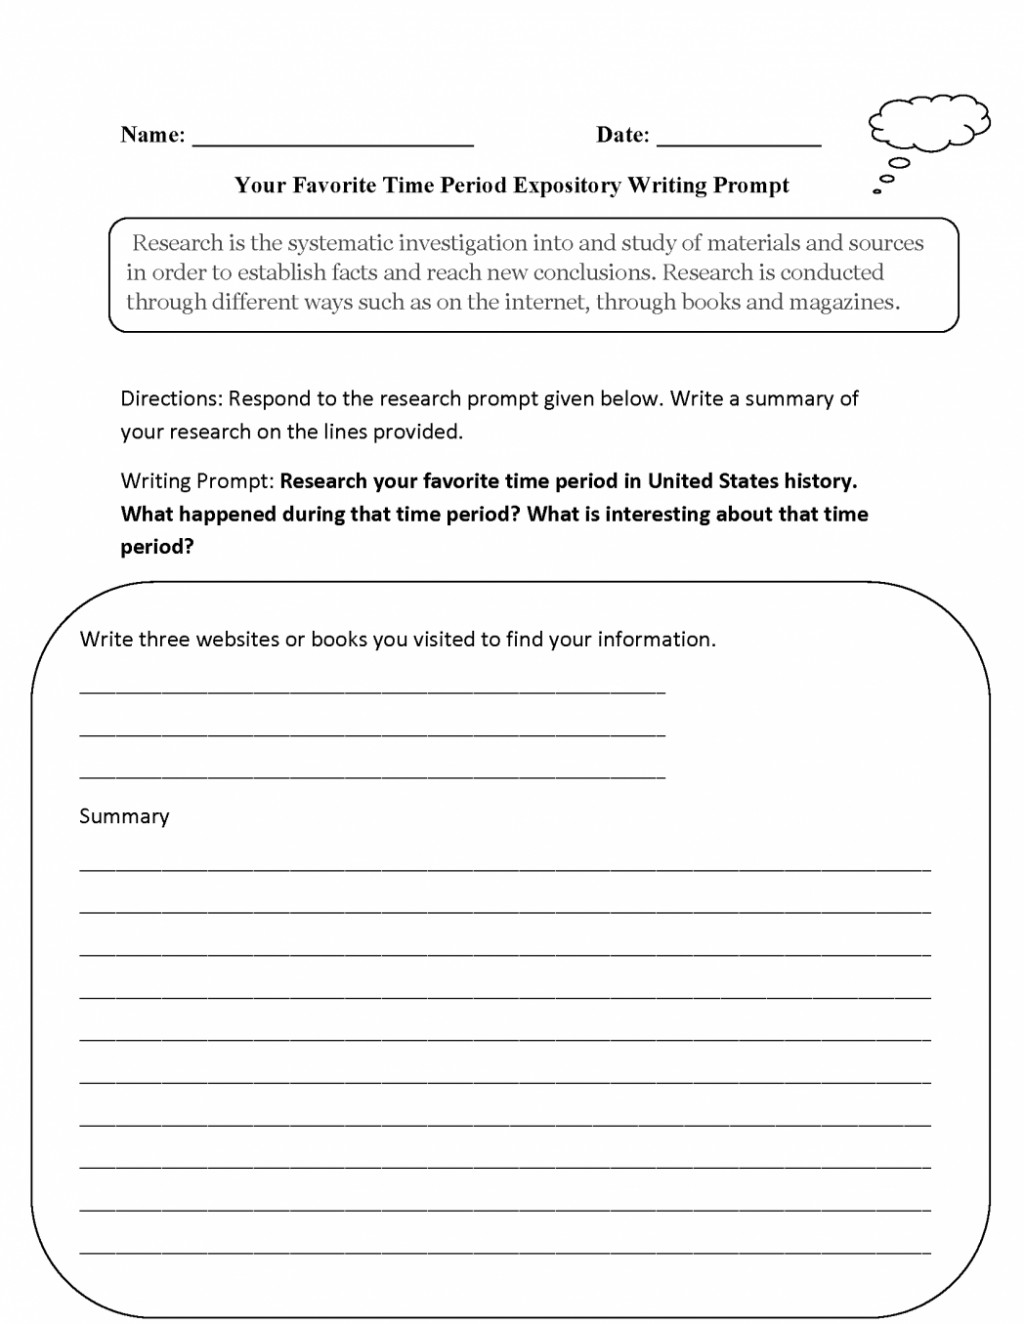 018 Essay Example Good Informative Topics Prompts Favorite Time Period Expository Writing P To Write An On The Topic Of Immigration Remarkable 2018 For High School Prompt 4th Grade Large